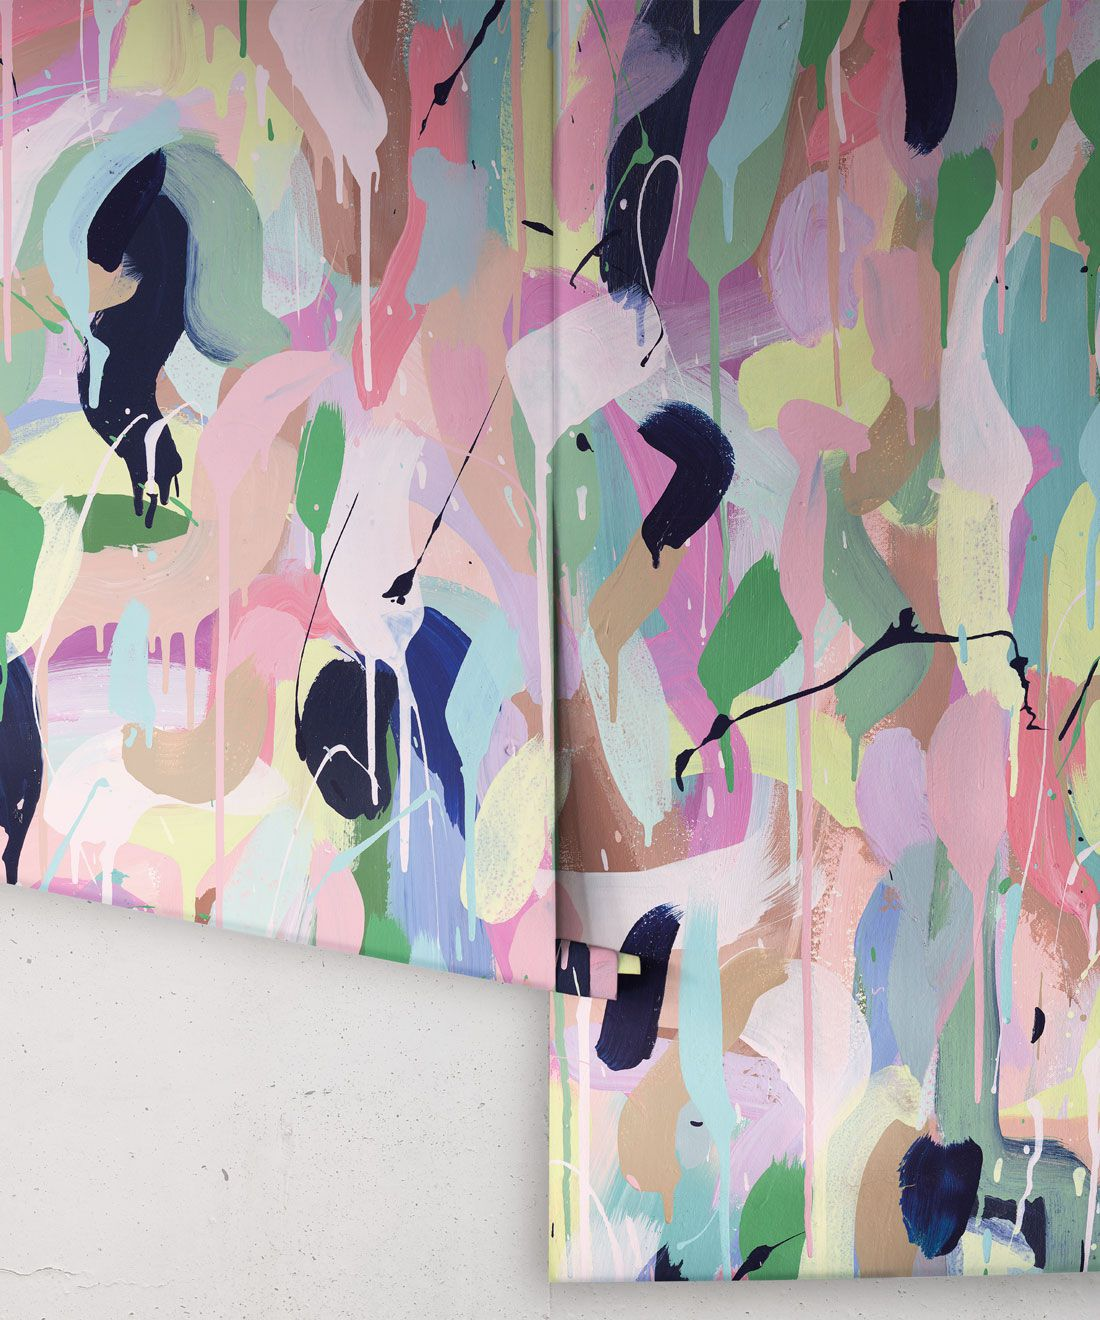 Between Tides Wallpaper •Colourful Painterly Wallpaper • Tiff Manuell • Abstract Expressionist Wallpaper • Rolls